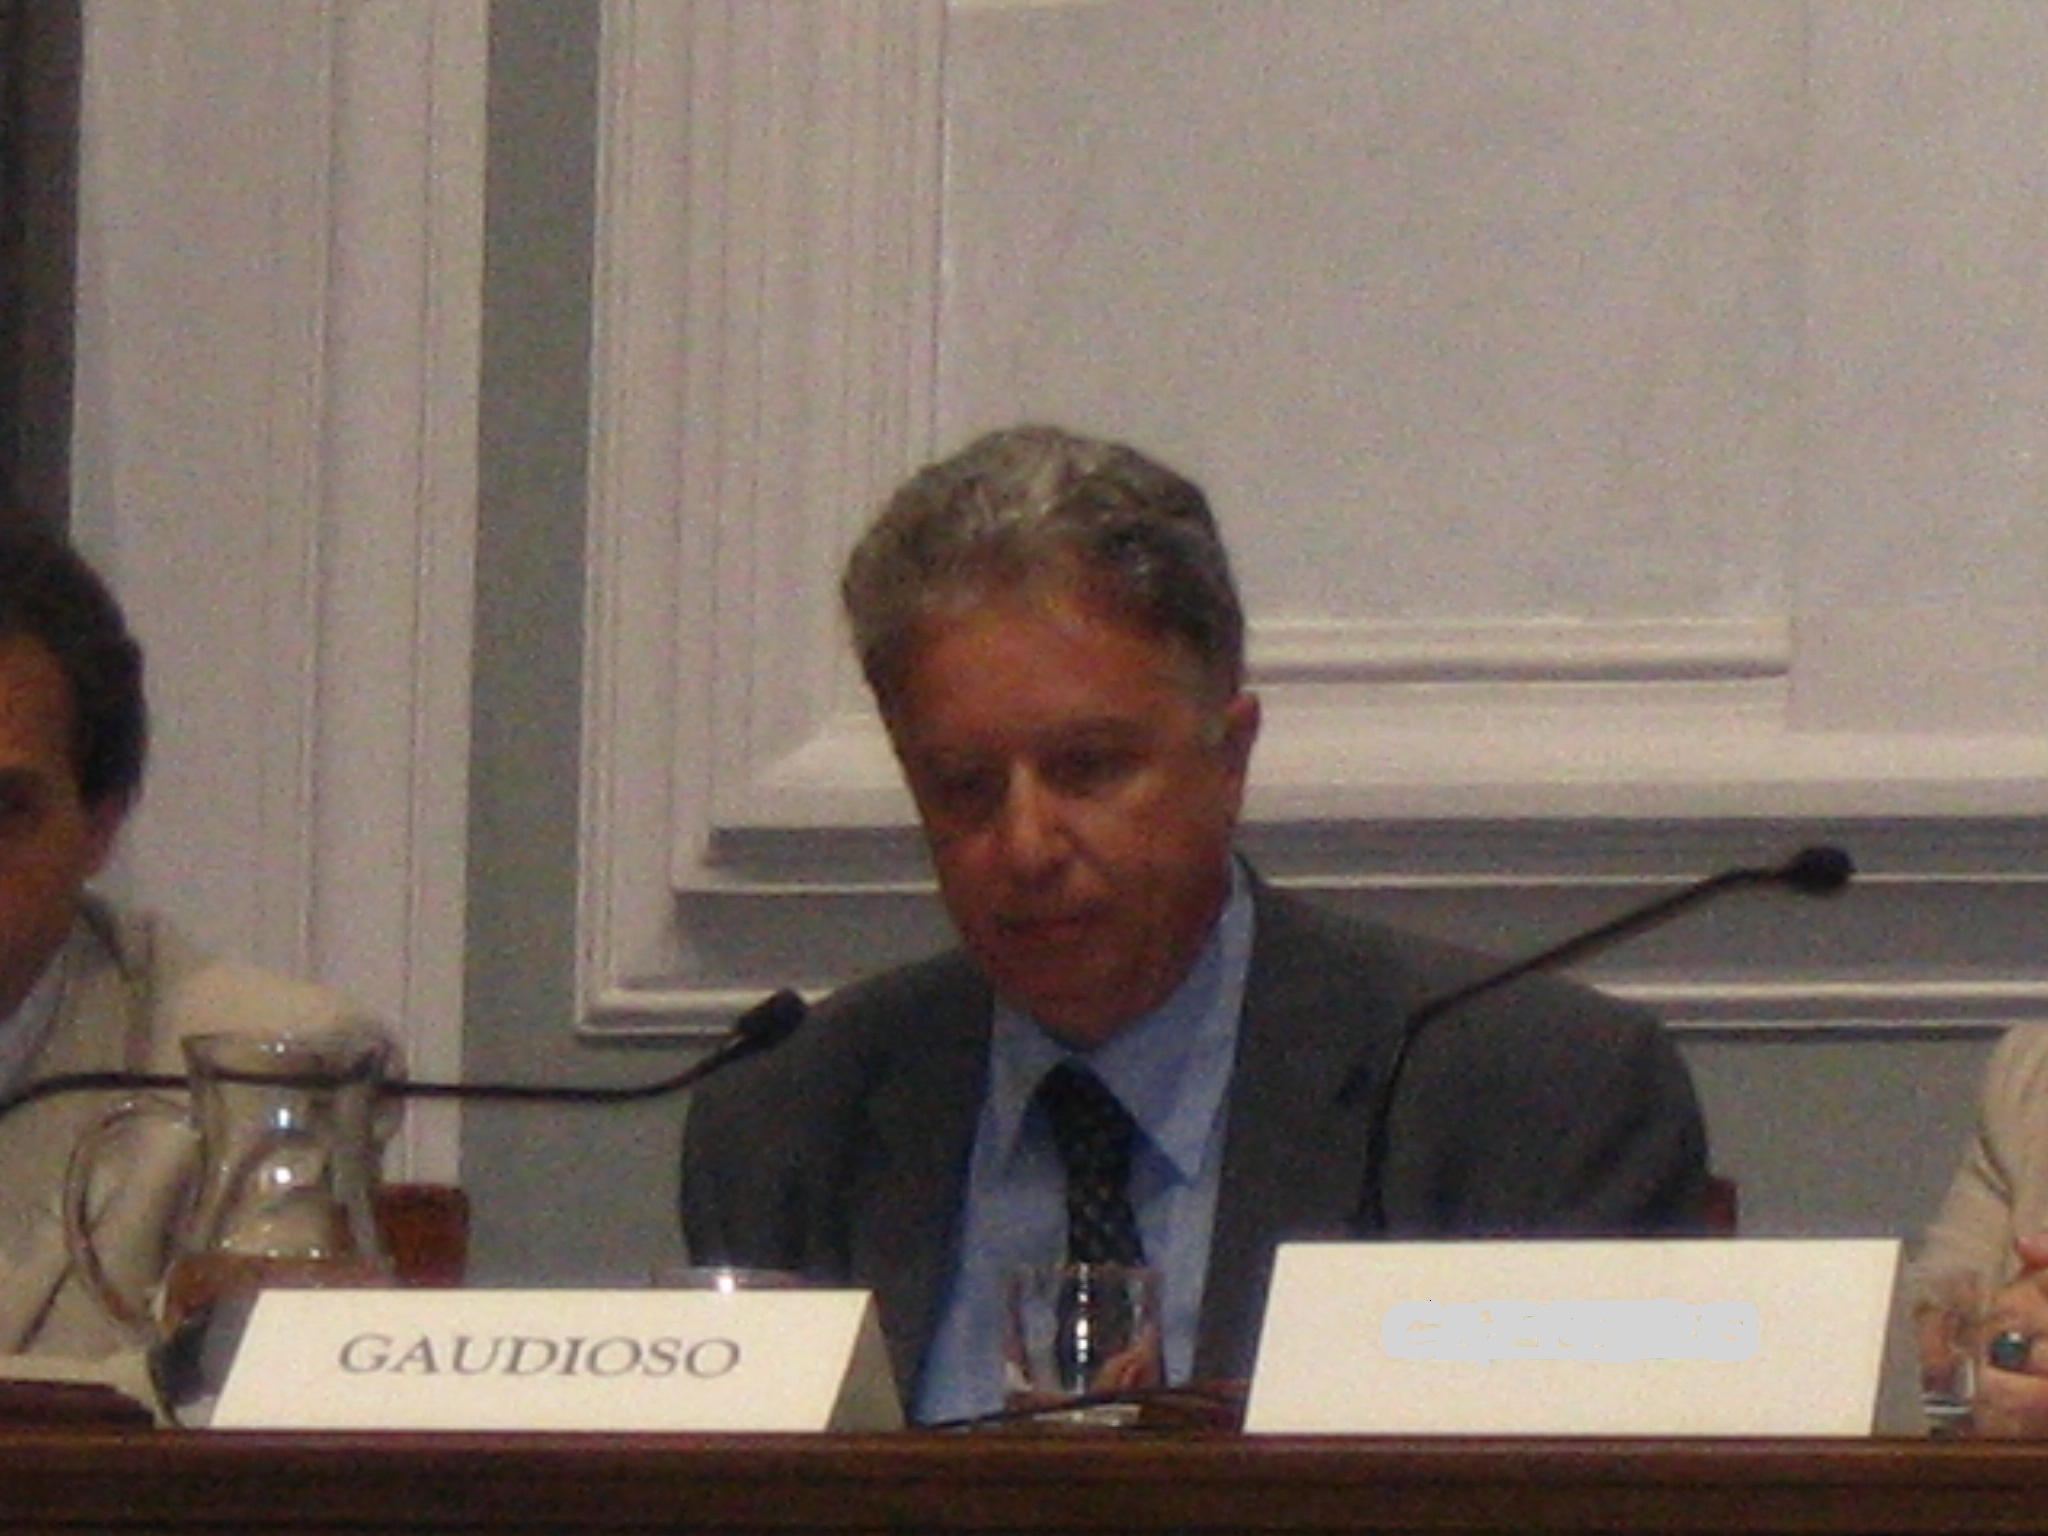 Francesco GAUDIOSO